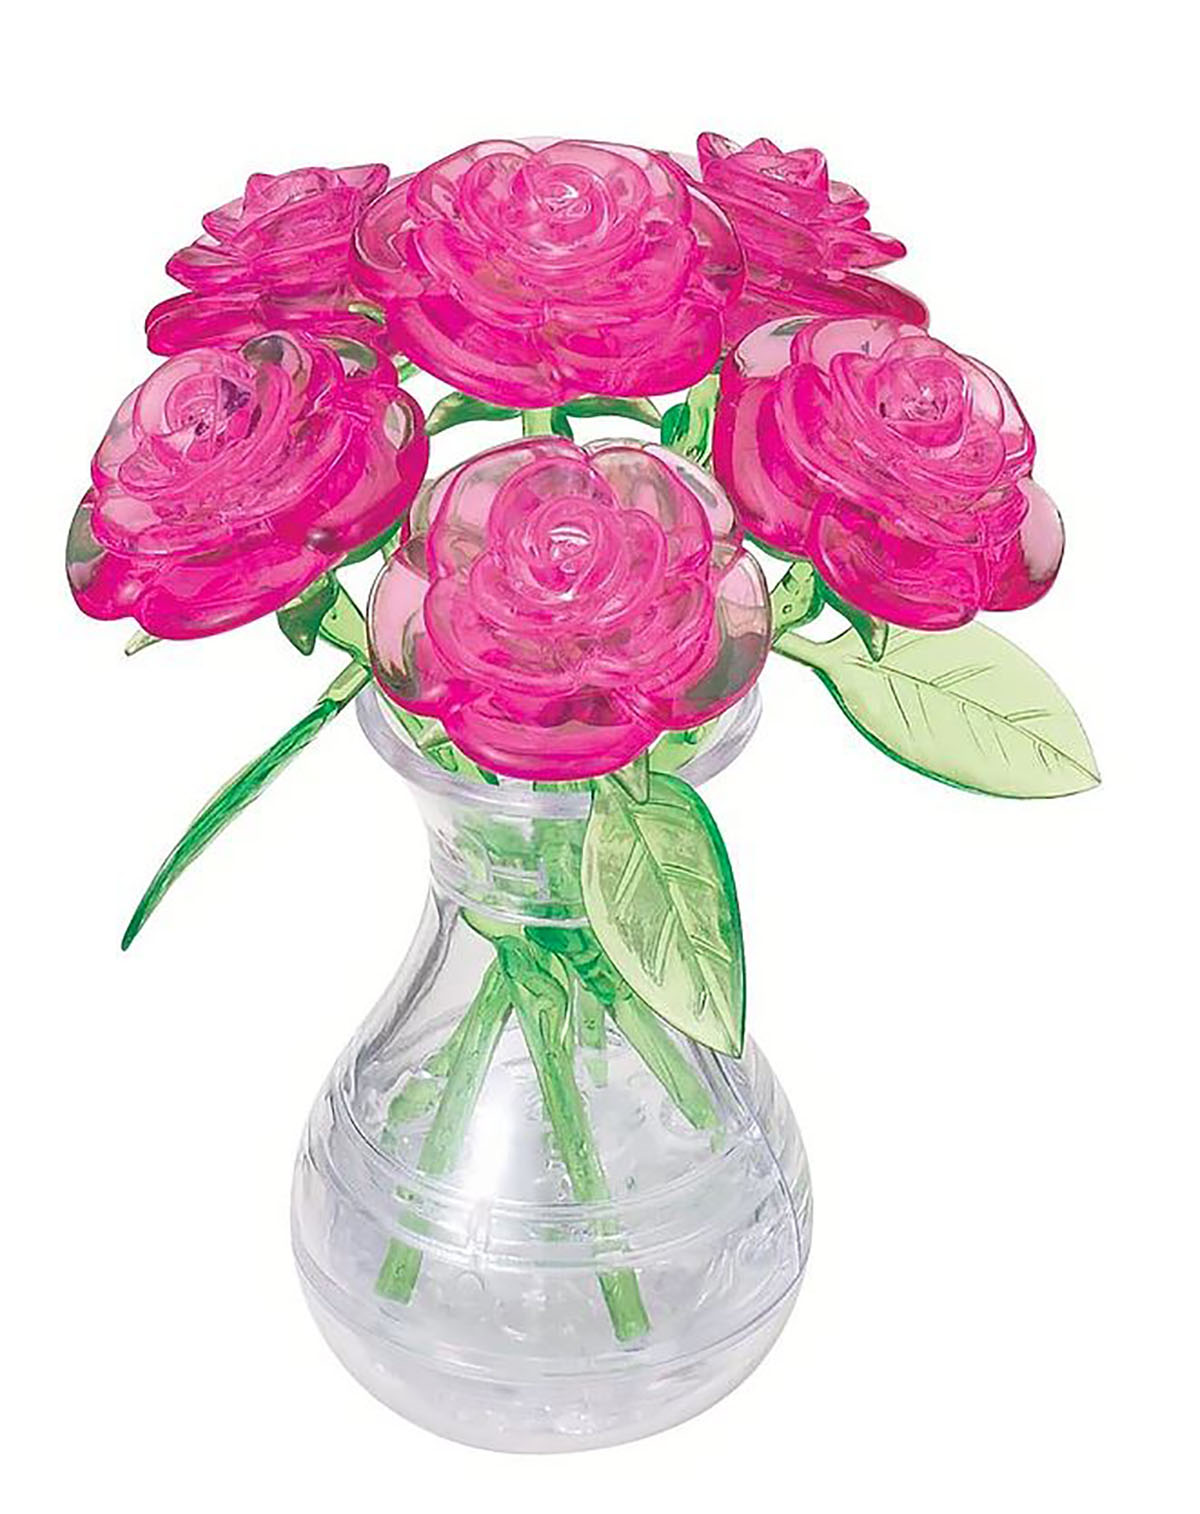 Pink Roses in a Vase Flowers 3D Puzzle